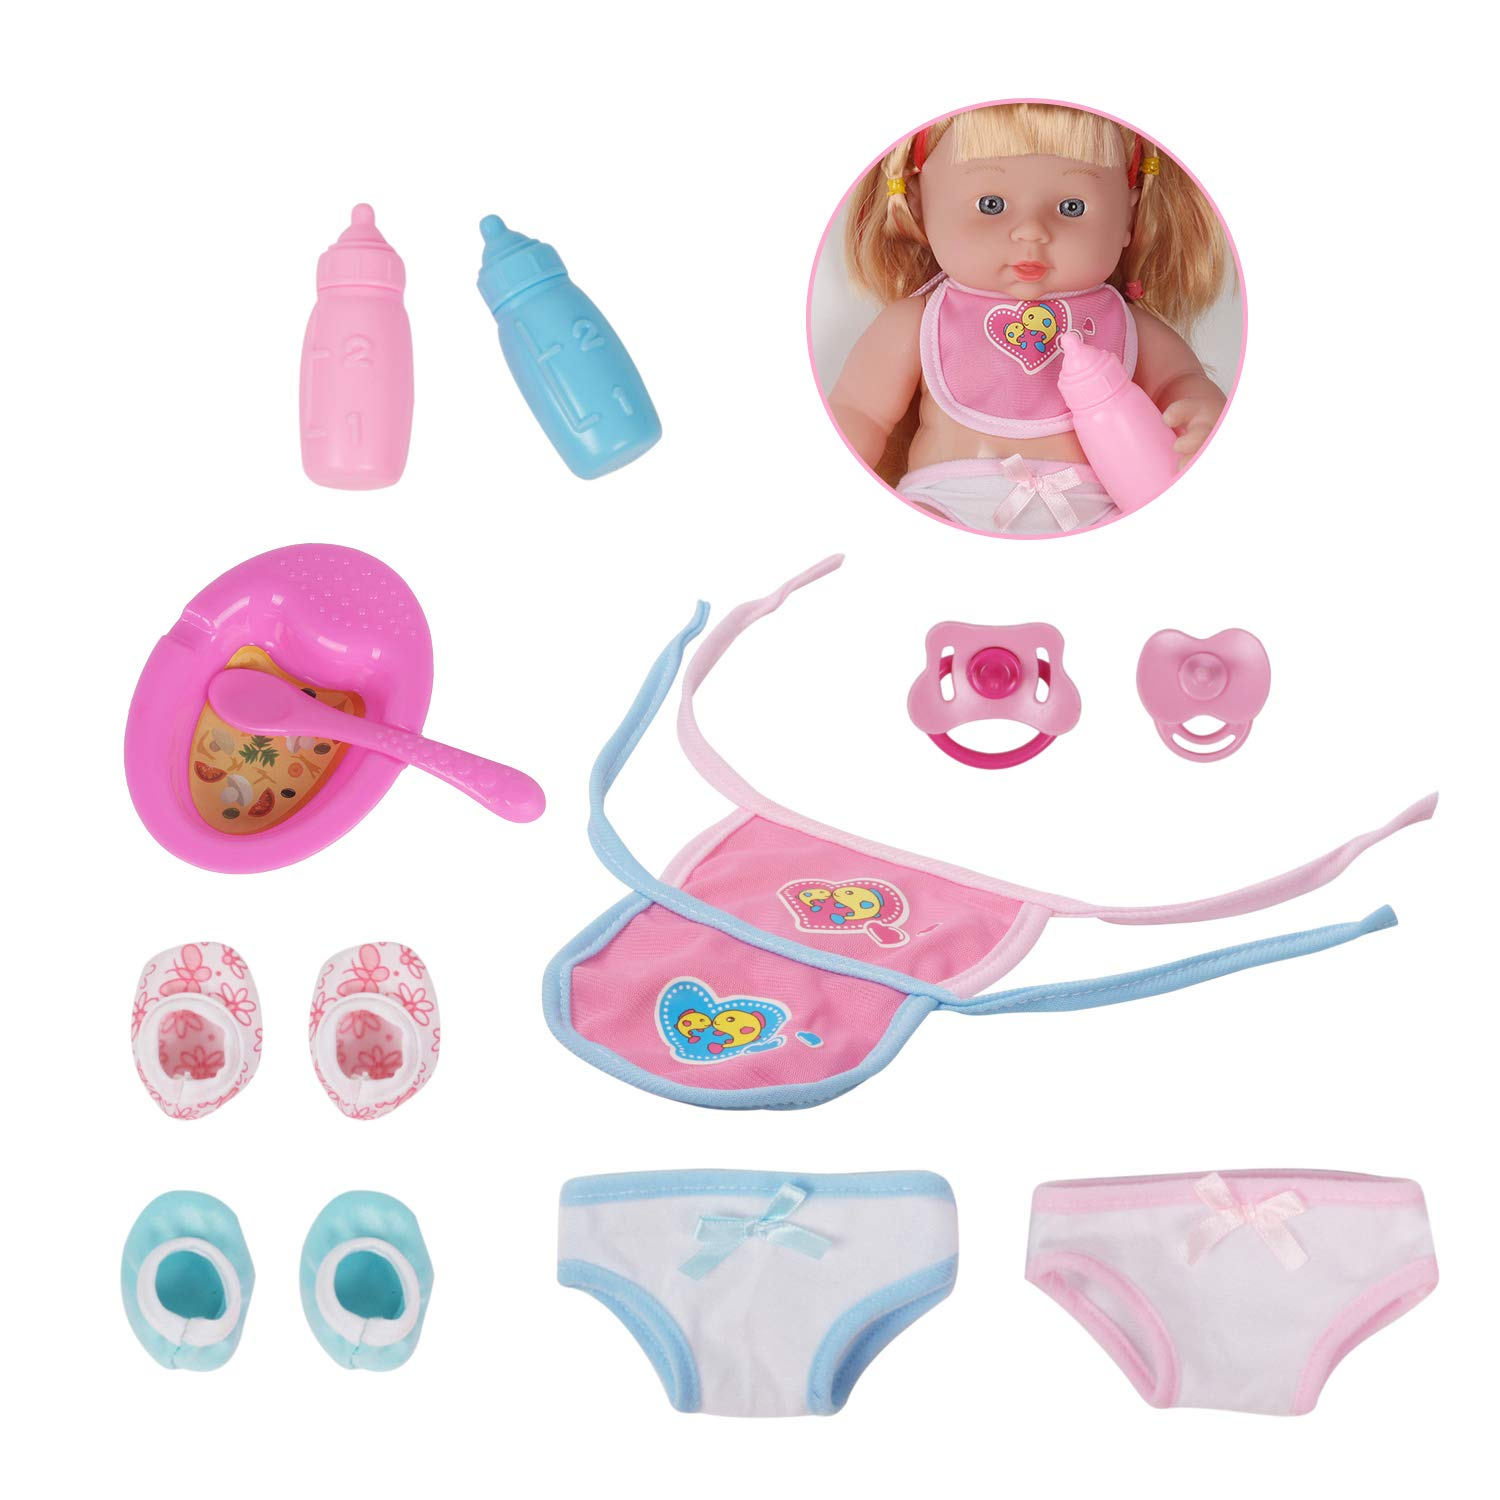 547ee1ca814 Huang Cheng Toys Doll Accessories 2 Bibs for 12-inch Doll Nursing Bottles Shoes  Pacifiers Underwears ...